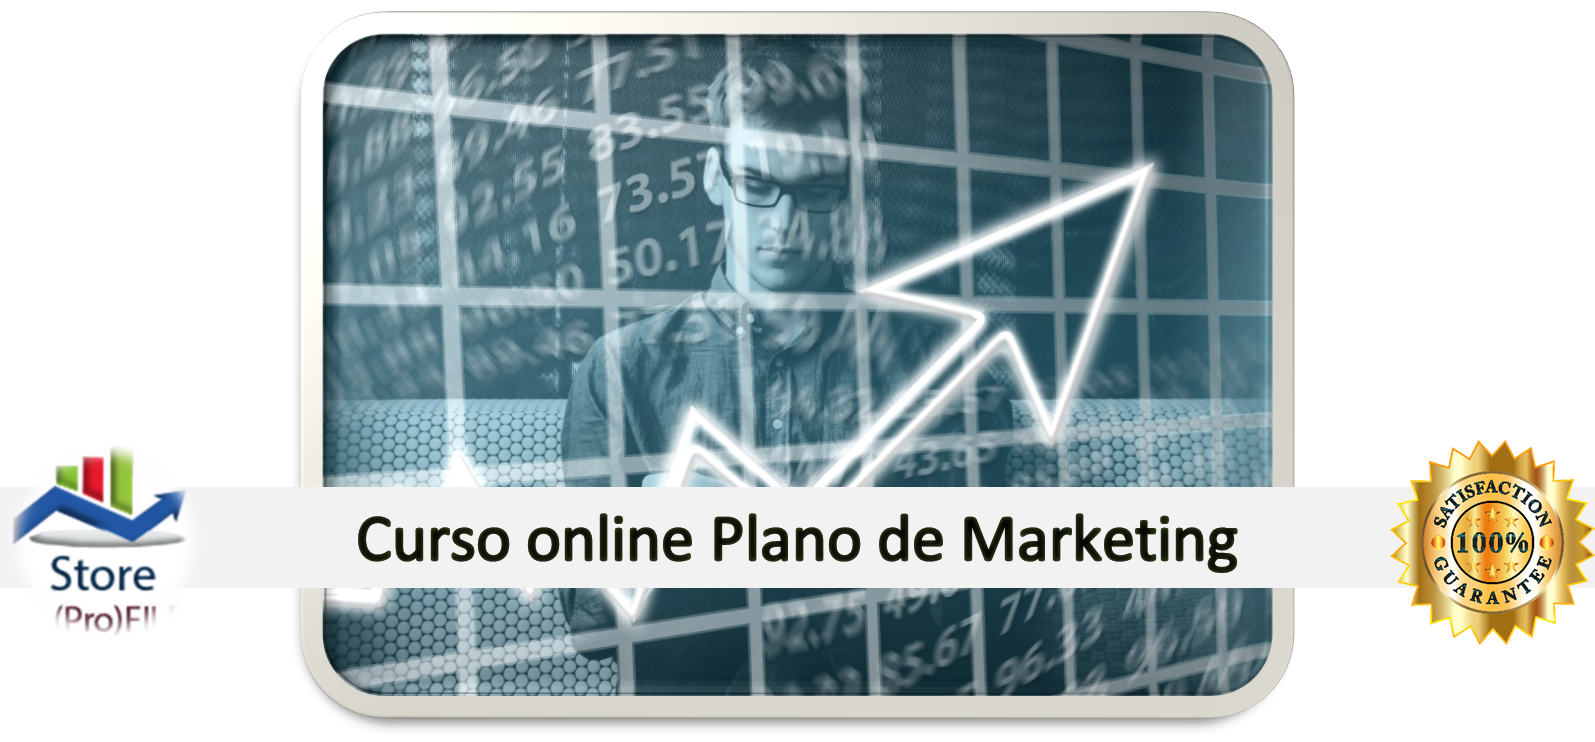 Curso Plano de marketing